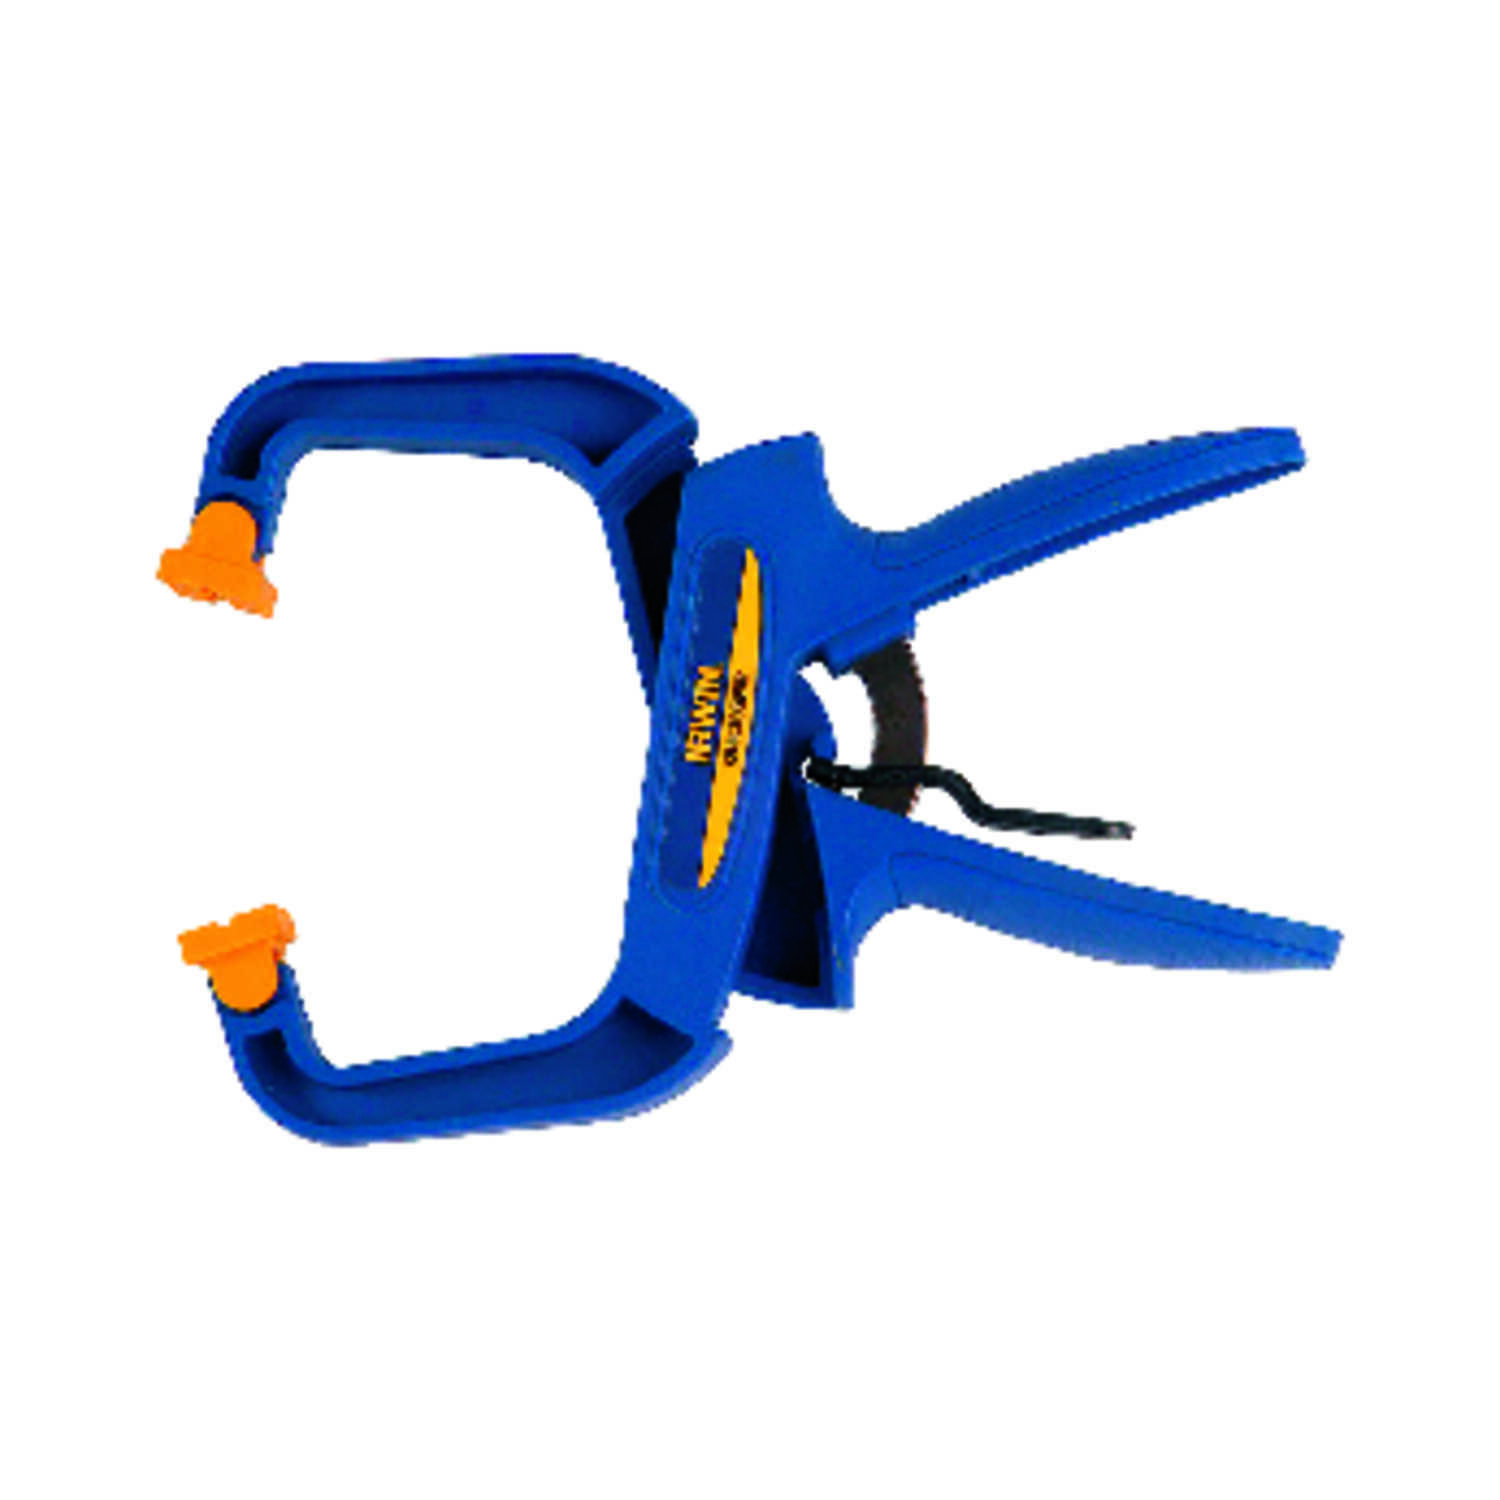 Irwin  Quick-Grip  4 in.  x 3 in. D Resin  Locking  Handi-Clamp  60 lb. capacity Blue  1 pc.